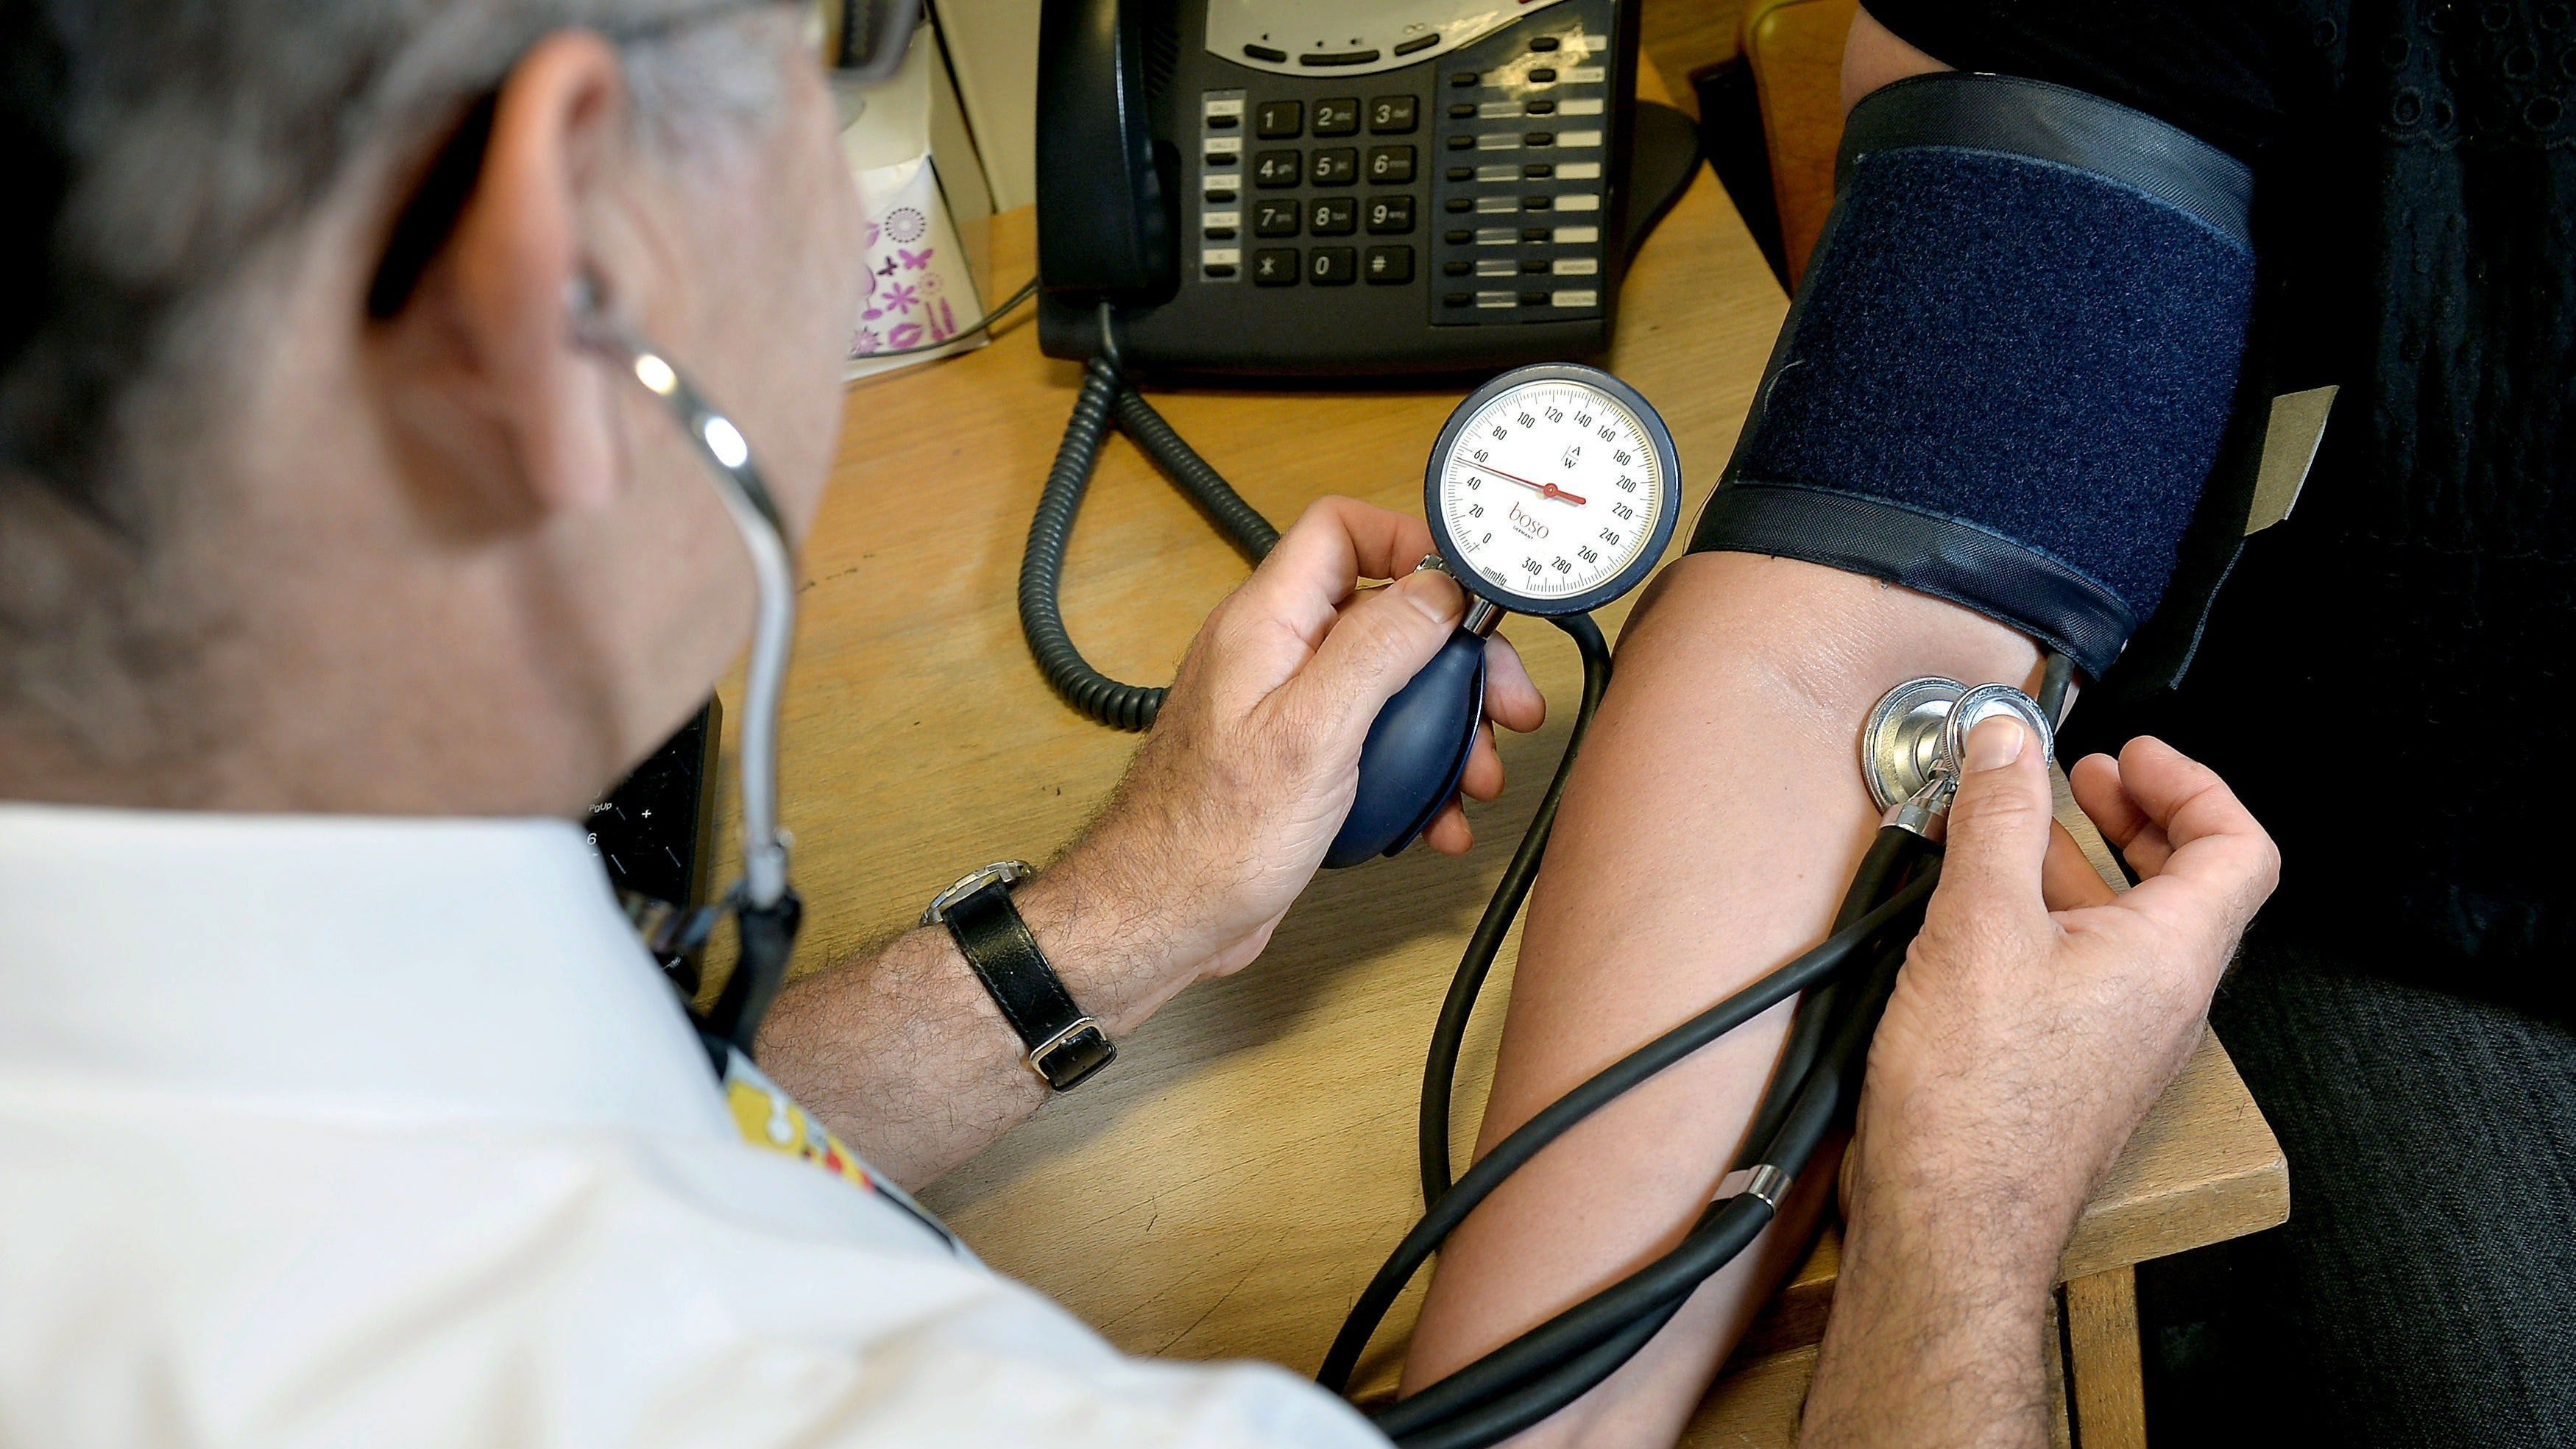 New Figures Show Alarming GP Waiting Times Of Three Weeks Or